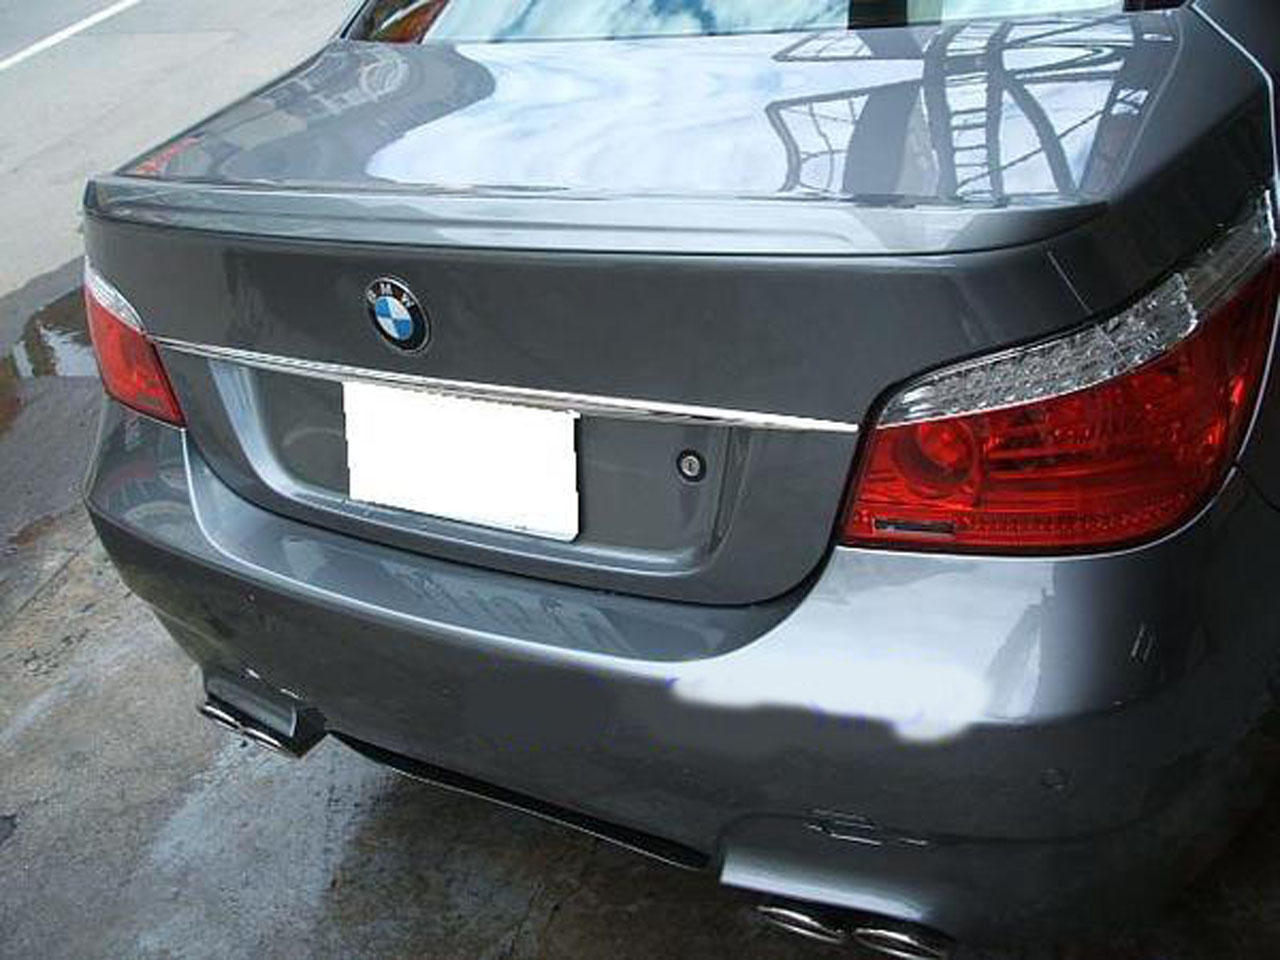 bmw e60 trunk deck lip spoiler m5 type 528i 535i 525i 530i 550i m5 2004 2010 ebay. Black Bedroom Furniture Sets. Home Design Ideas